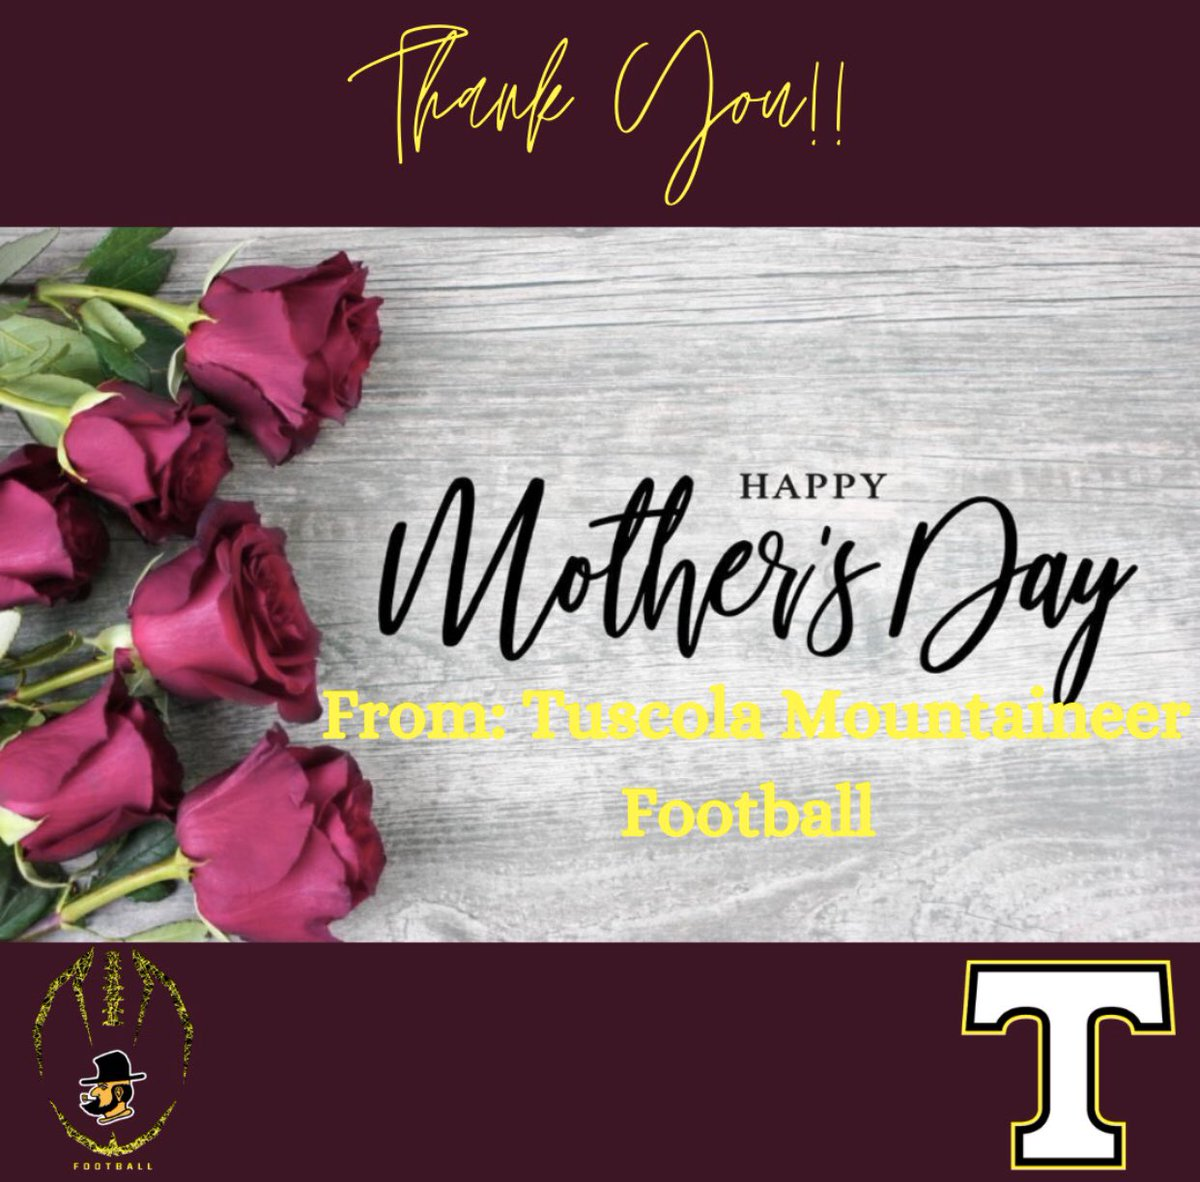 Happy Mother's Day to all of our AMAZING Tuscola Mountaineer Football Moms!! Y'all are the best!   #HappyMothersDay #WinTheDay #TuscolaFootball  pic.twitter.com/bL001VkZmL